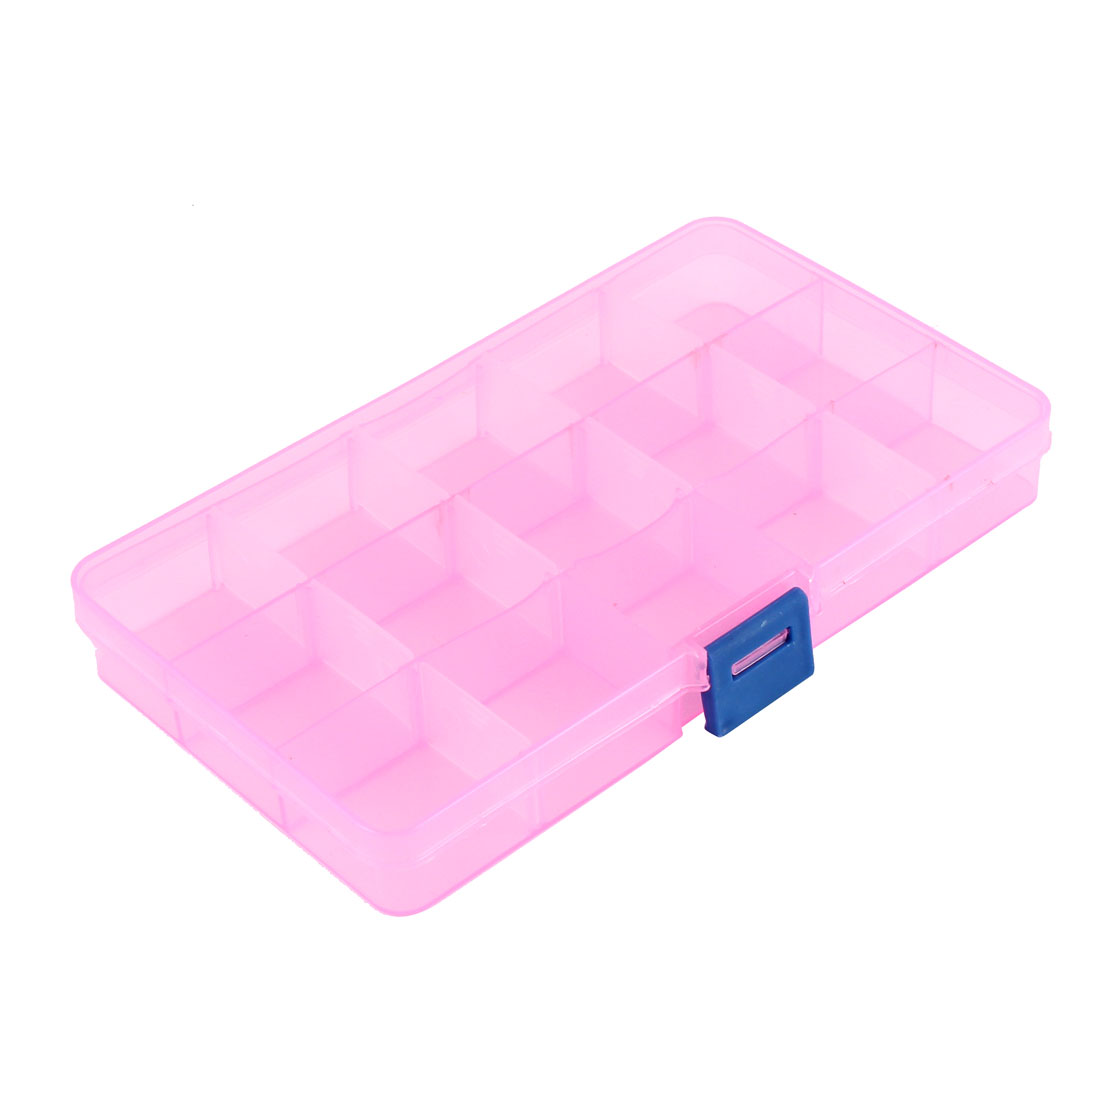 Medicine Jewellery Plastic 15 Slots Storage Box Case Organizer Container Clear Pink